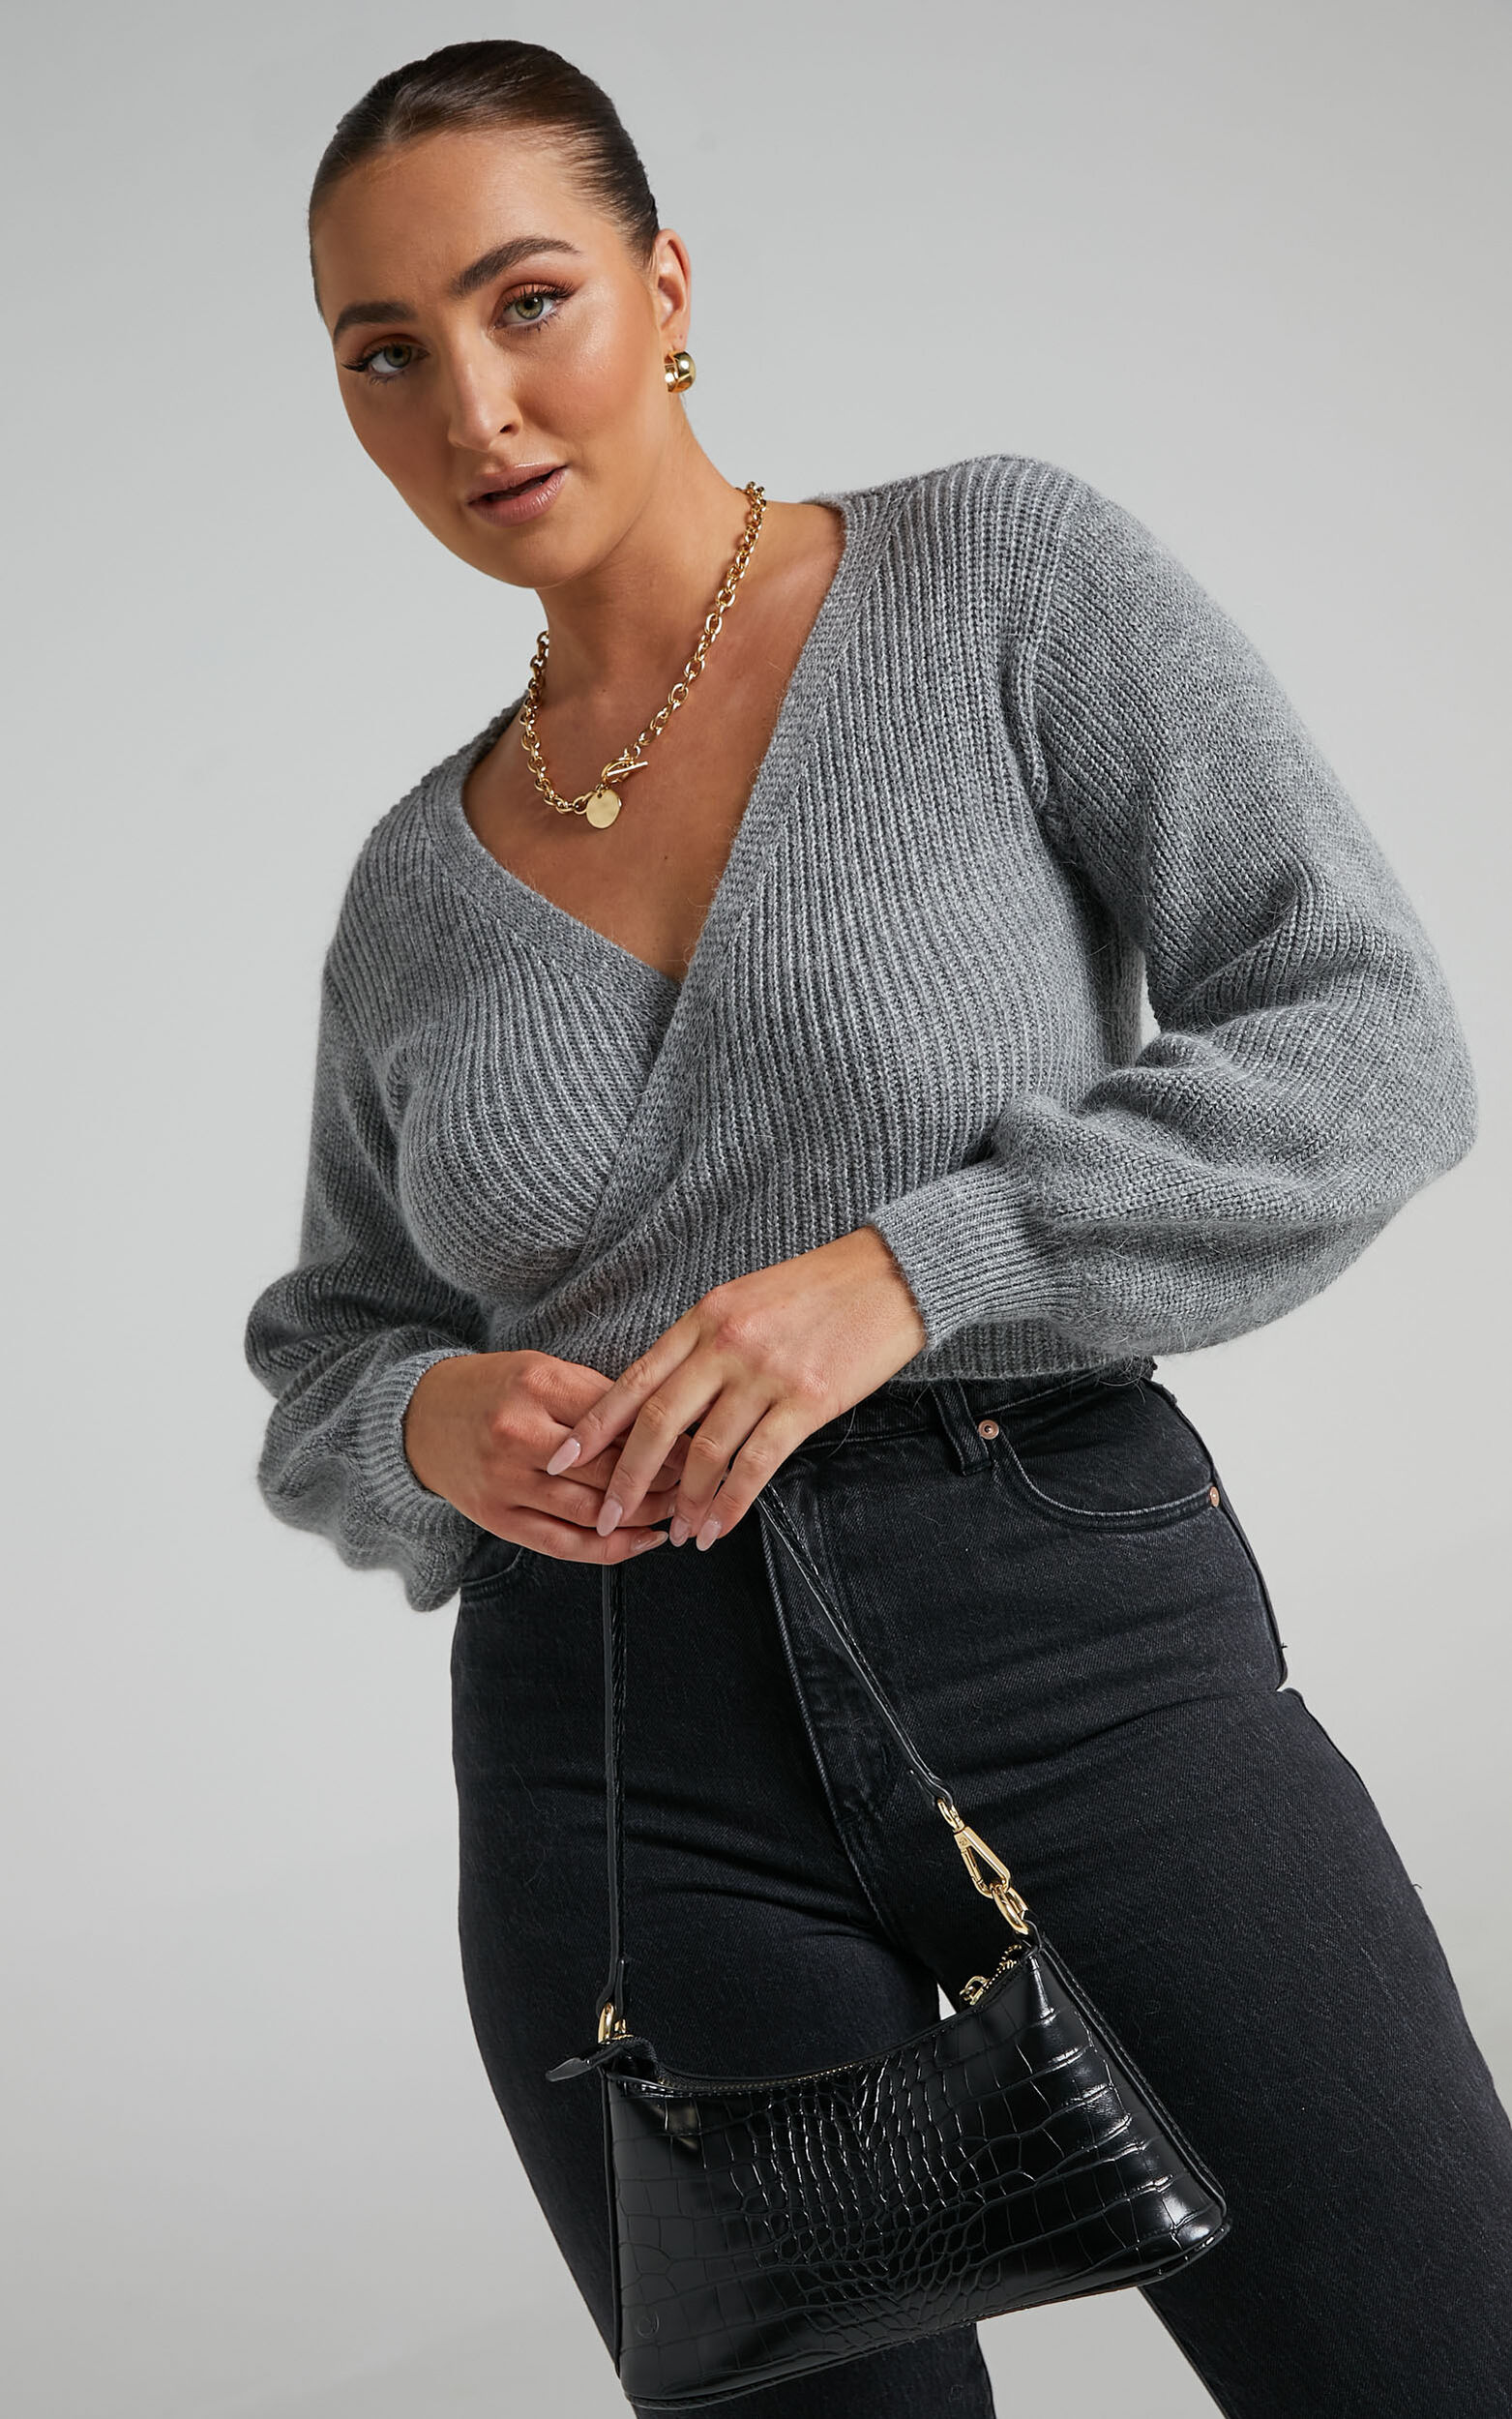 Sweetie Pie Knit Top in Grey - 06, GRY1, super-hi-res image number null